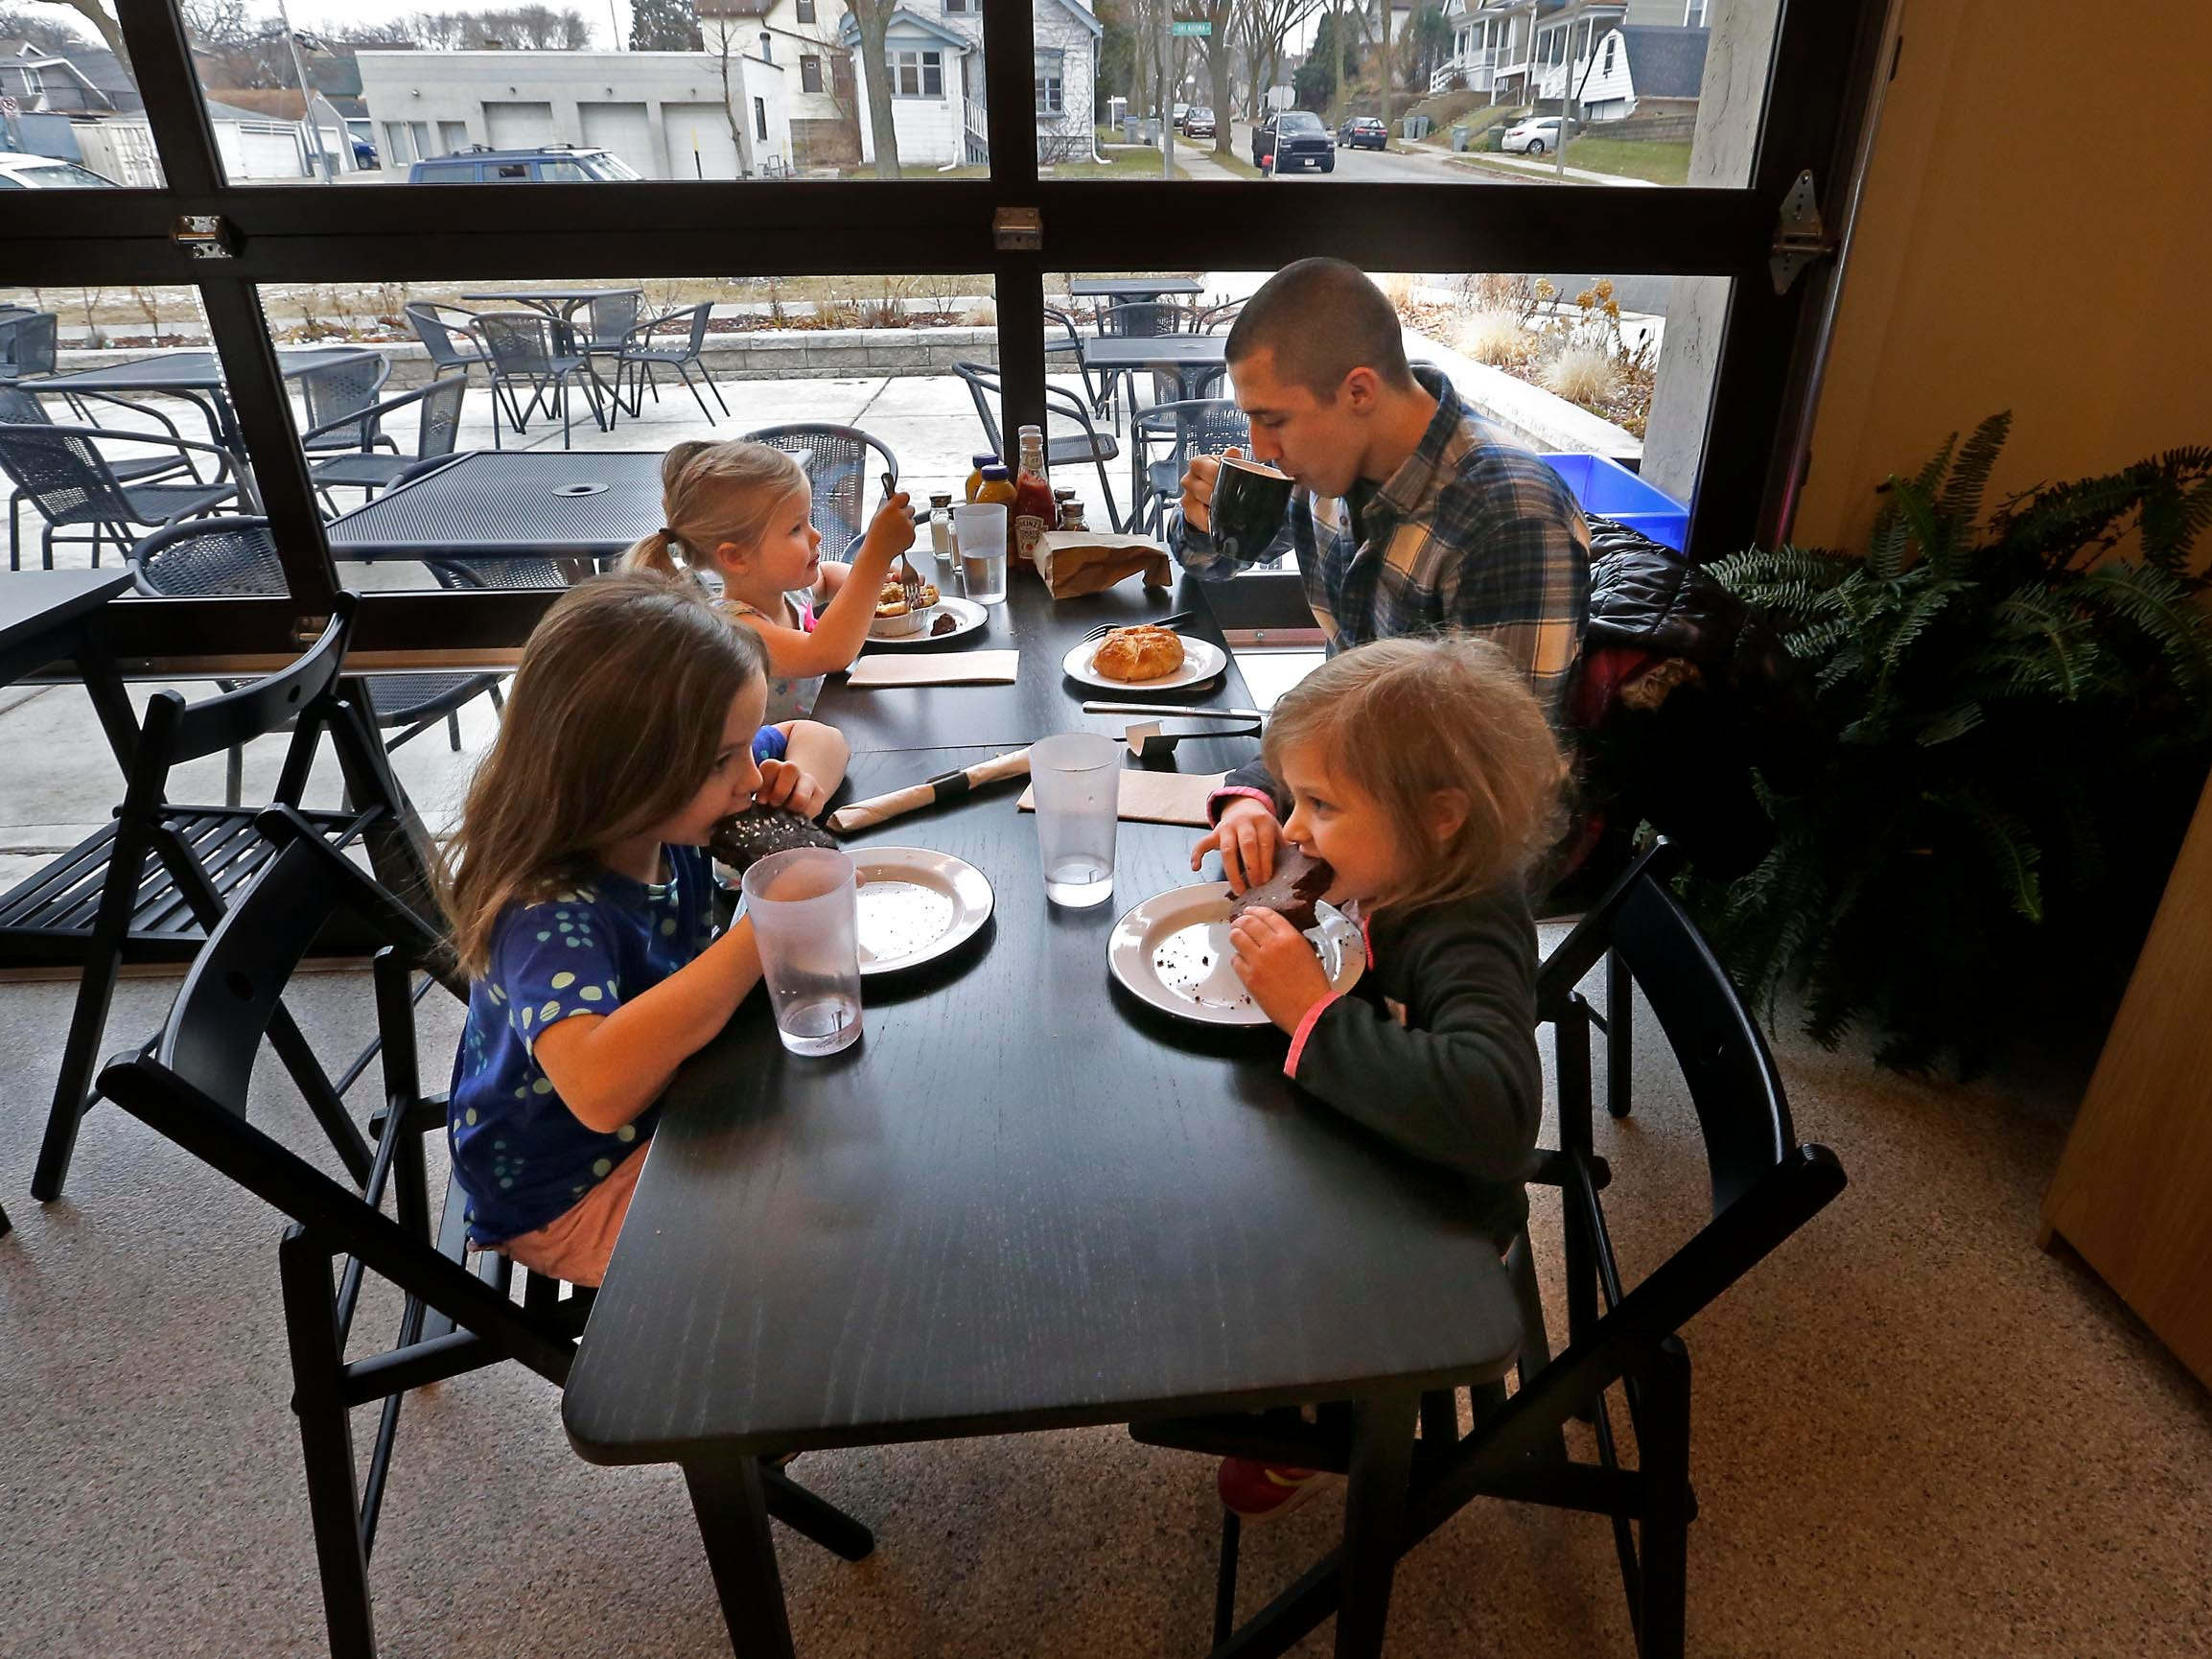 Ben Naus and his daughters Maisie, 3 (back);  Alane, 7 (left);  and Eleanor, (right) 5, from  Oak Creek enjoy an outing at  SmallPie in Bay View.